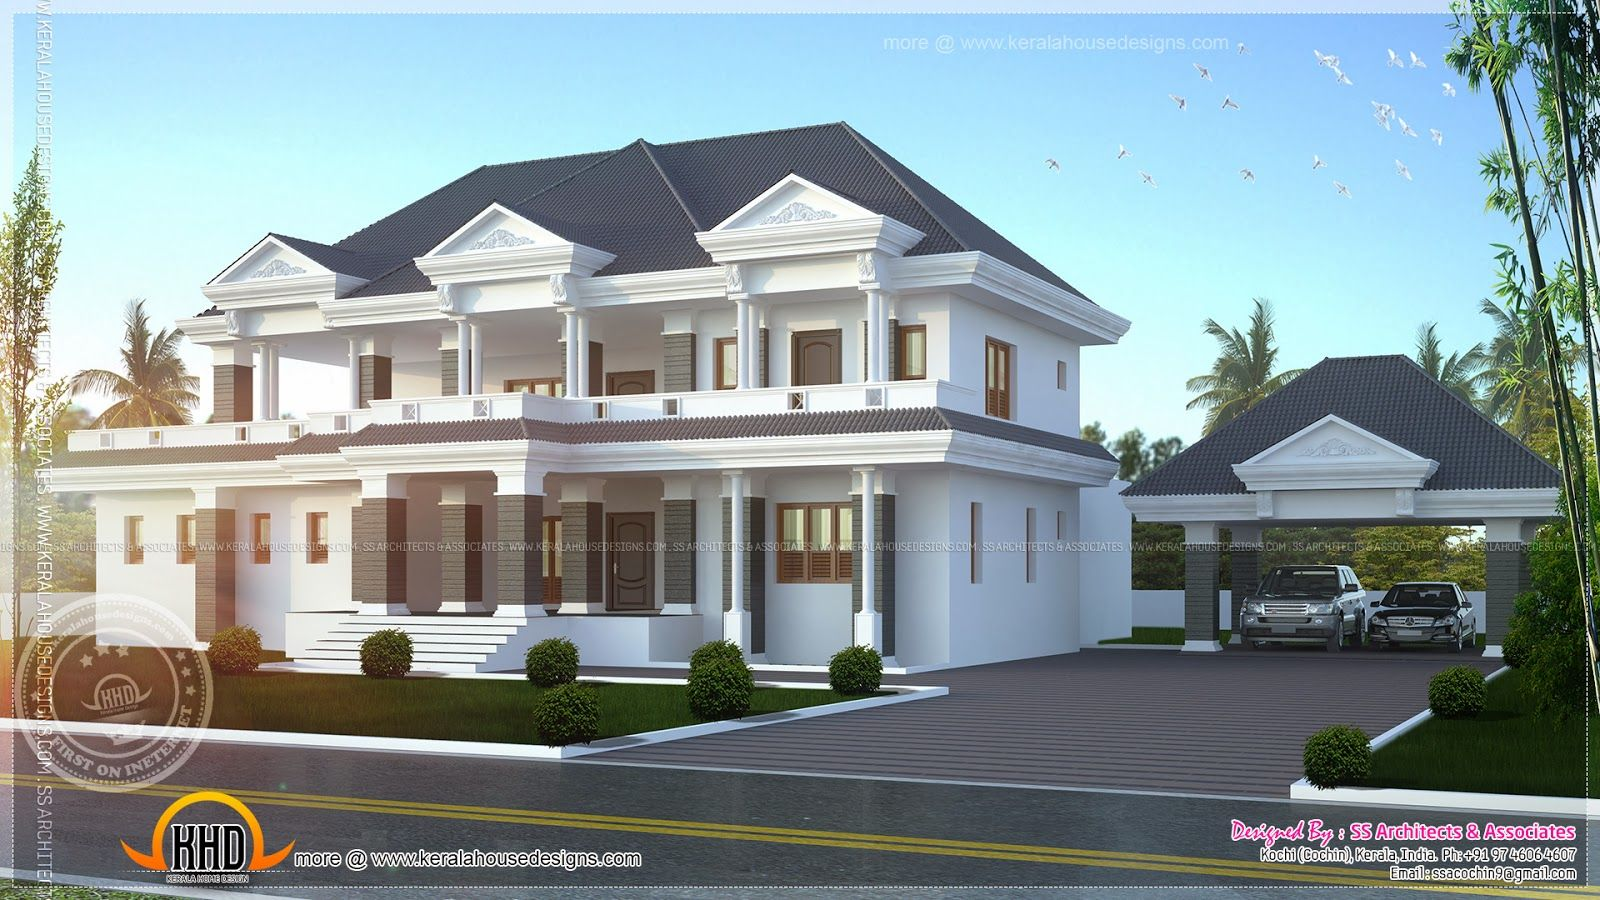 Modern Nalukettu House Plans Joy Studio Design Gallery Design Home - Luxury home designs photos